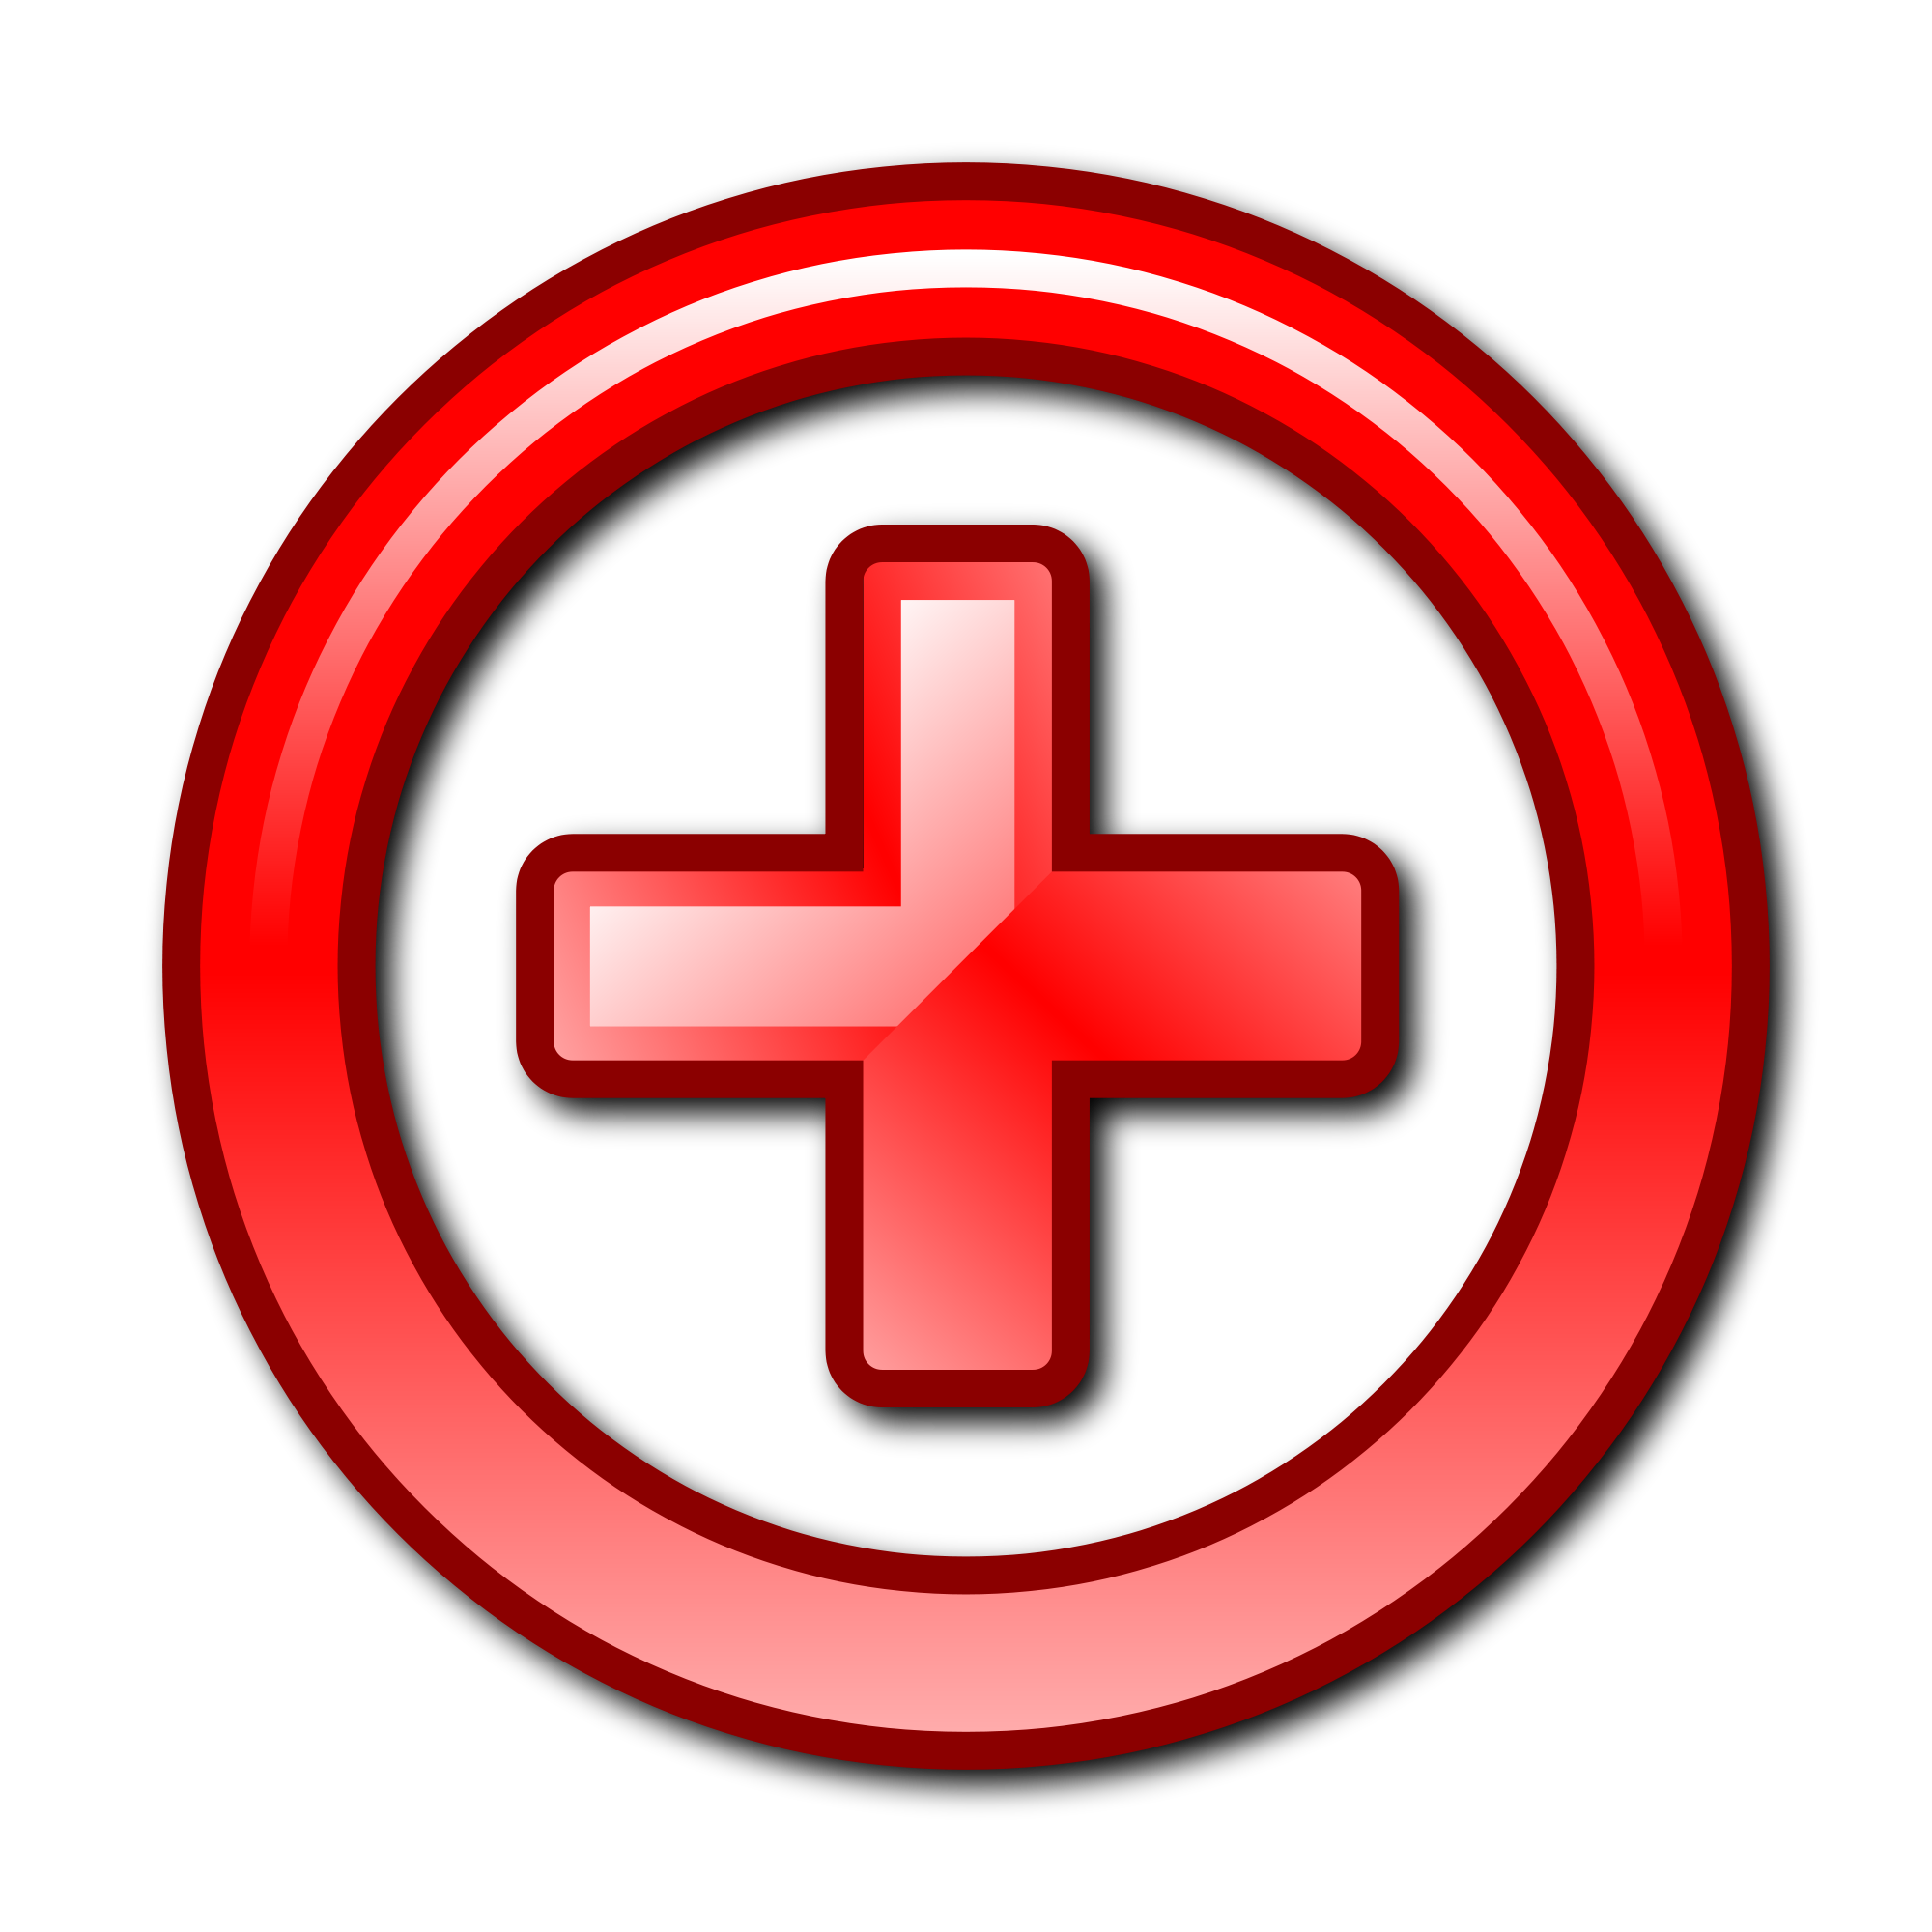 red plus sign png